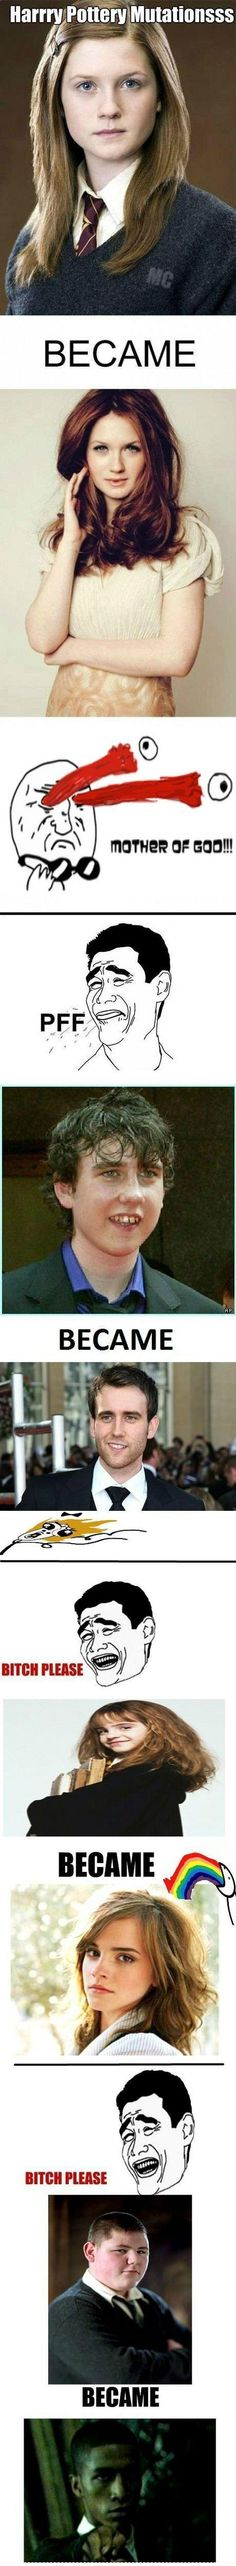 Harry Potter Mutations, made me laugh